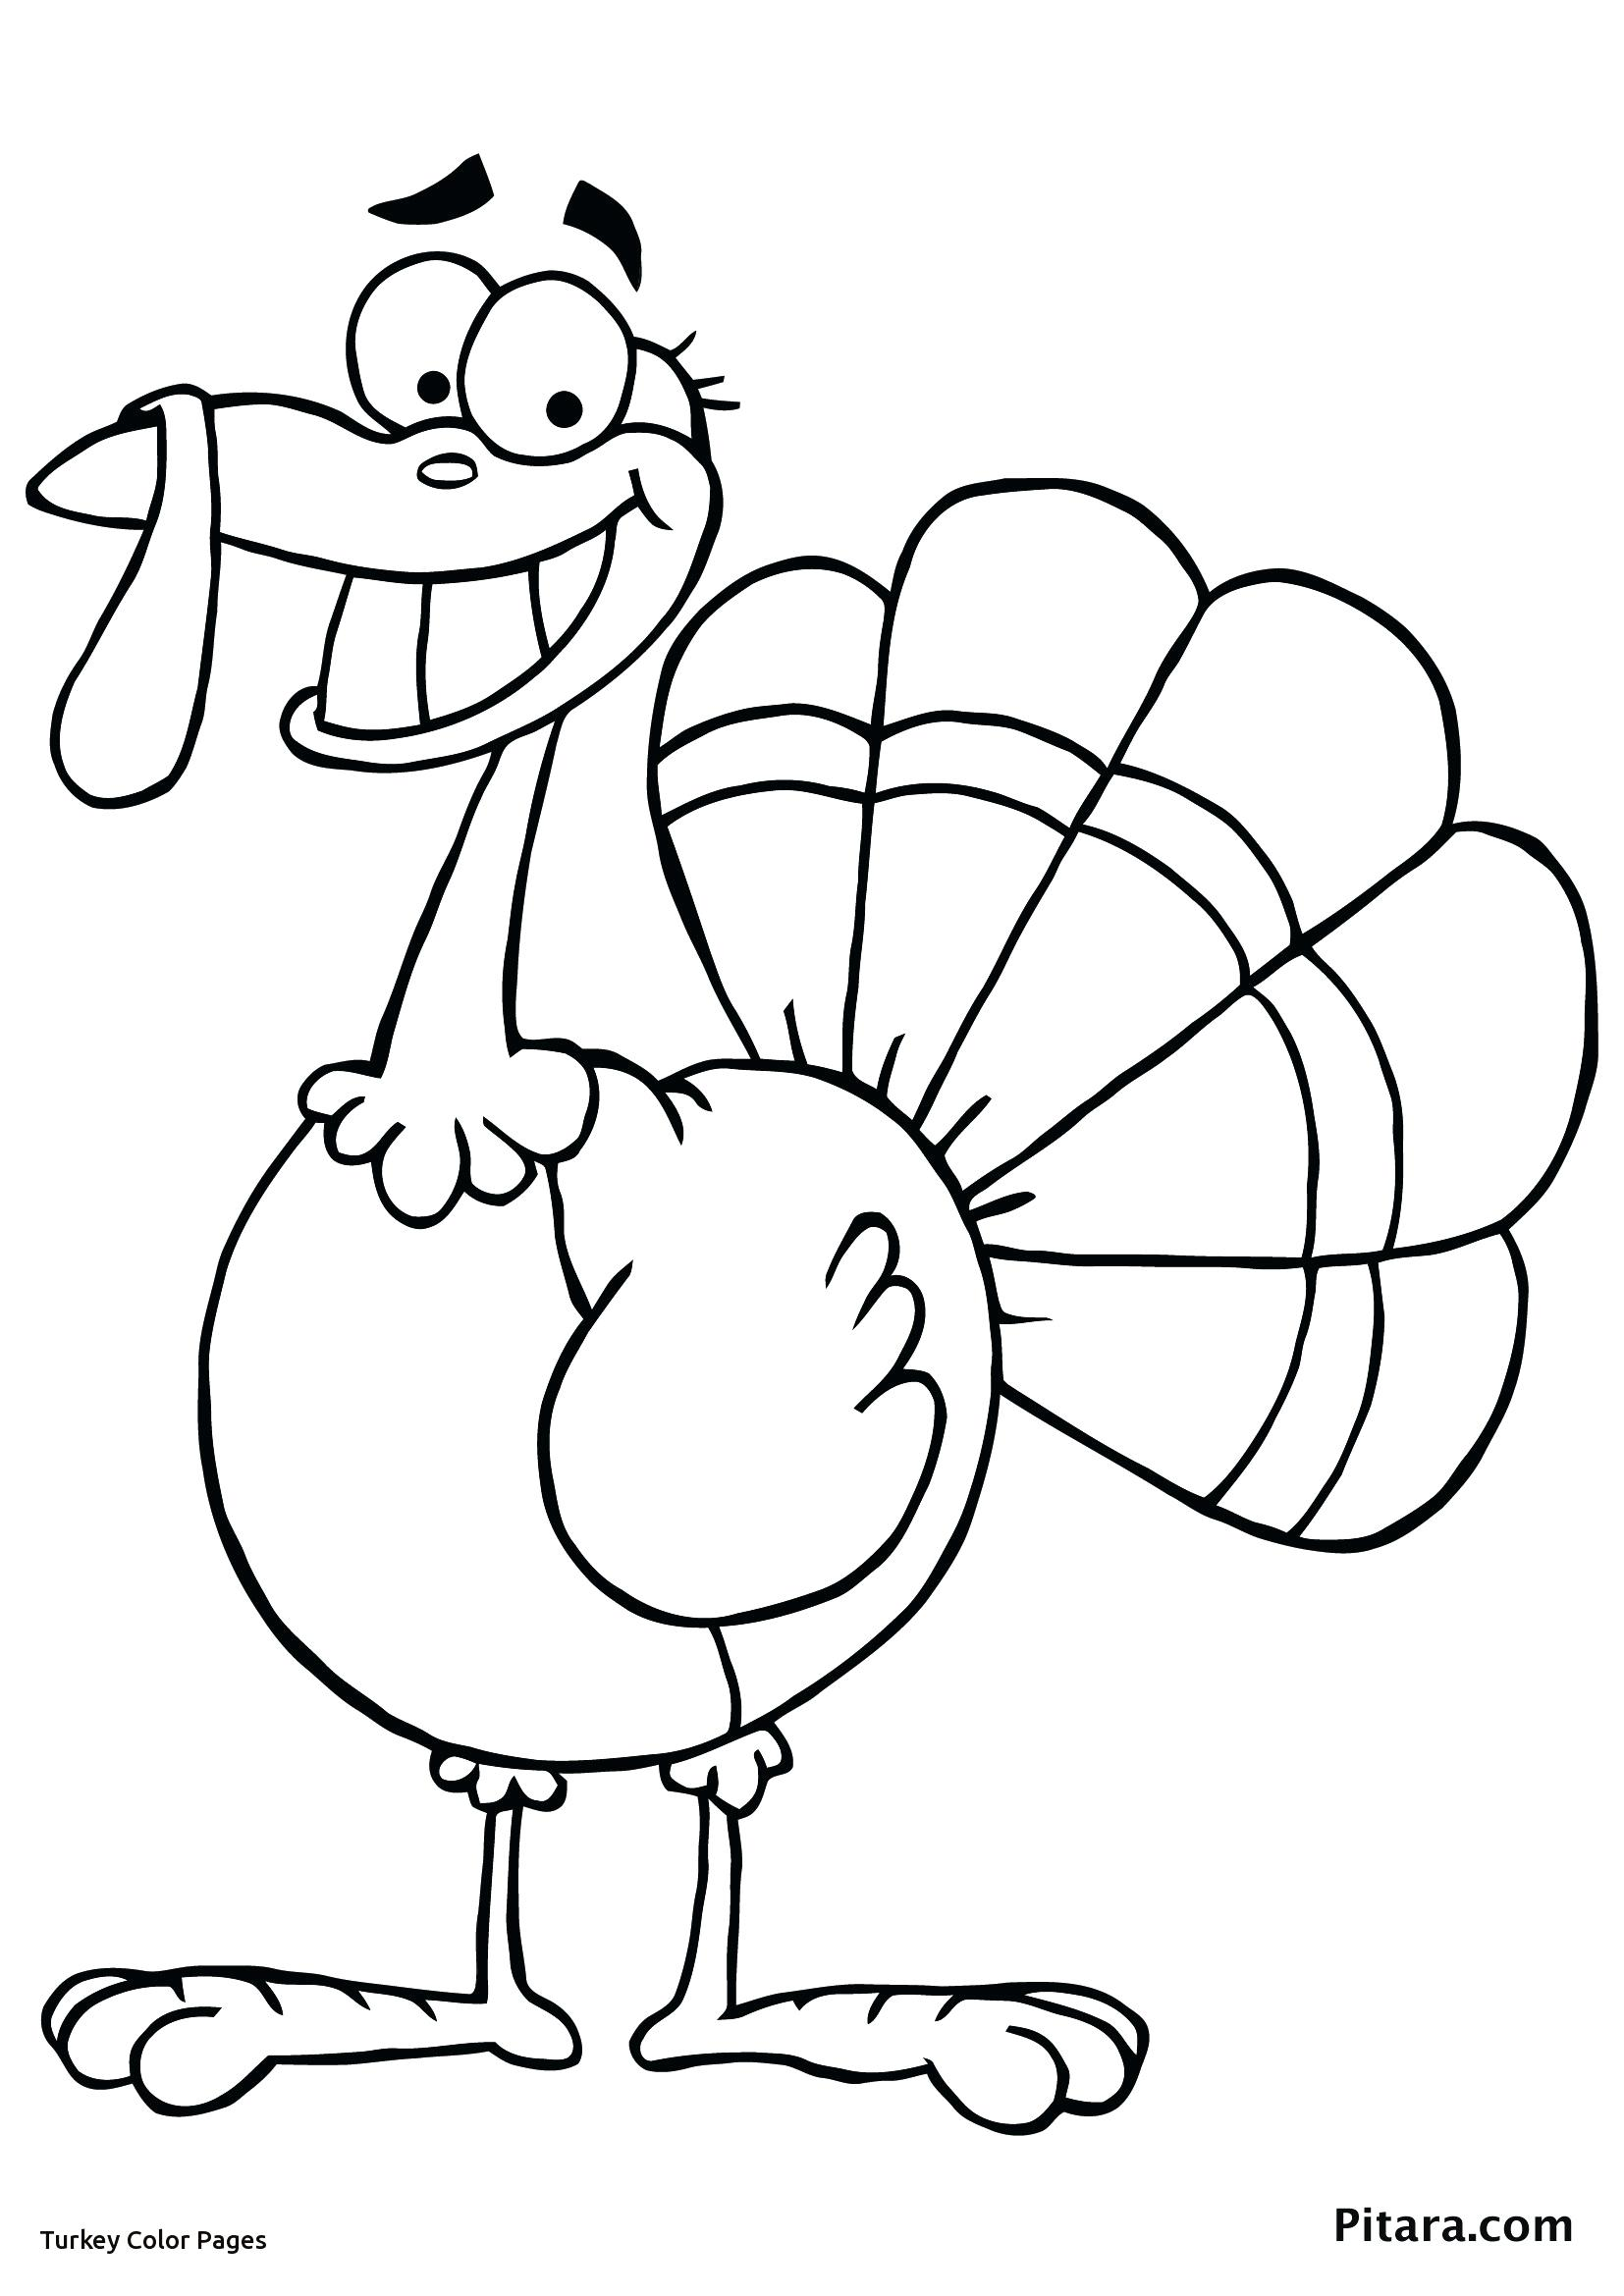 1654x2339 Love Turkey Bird Coloring Pages Security Picture To Color For Kids